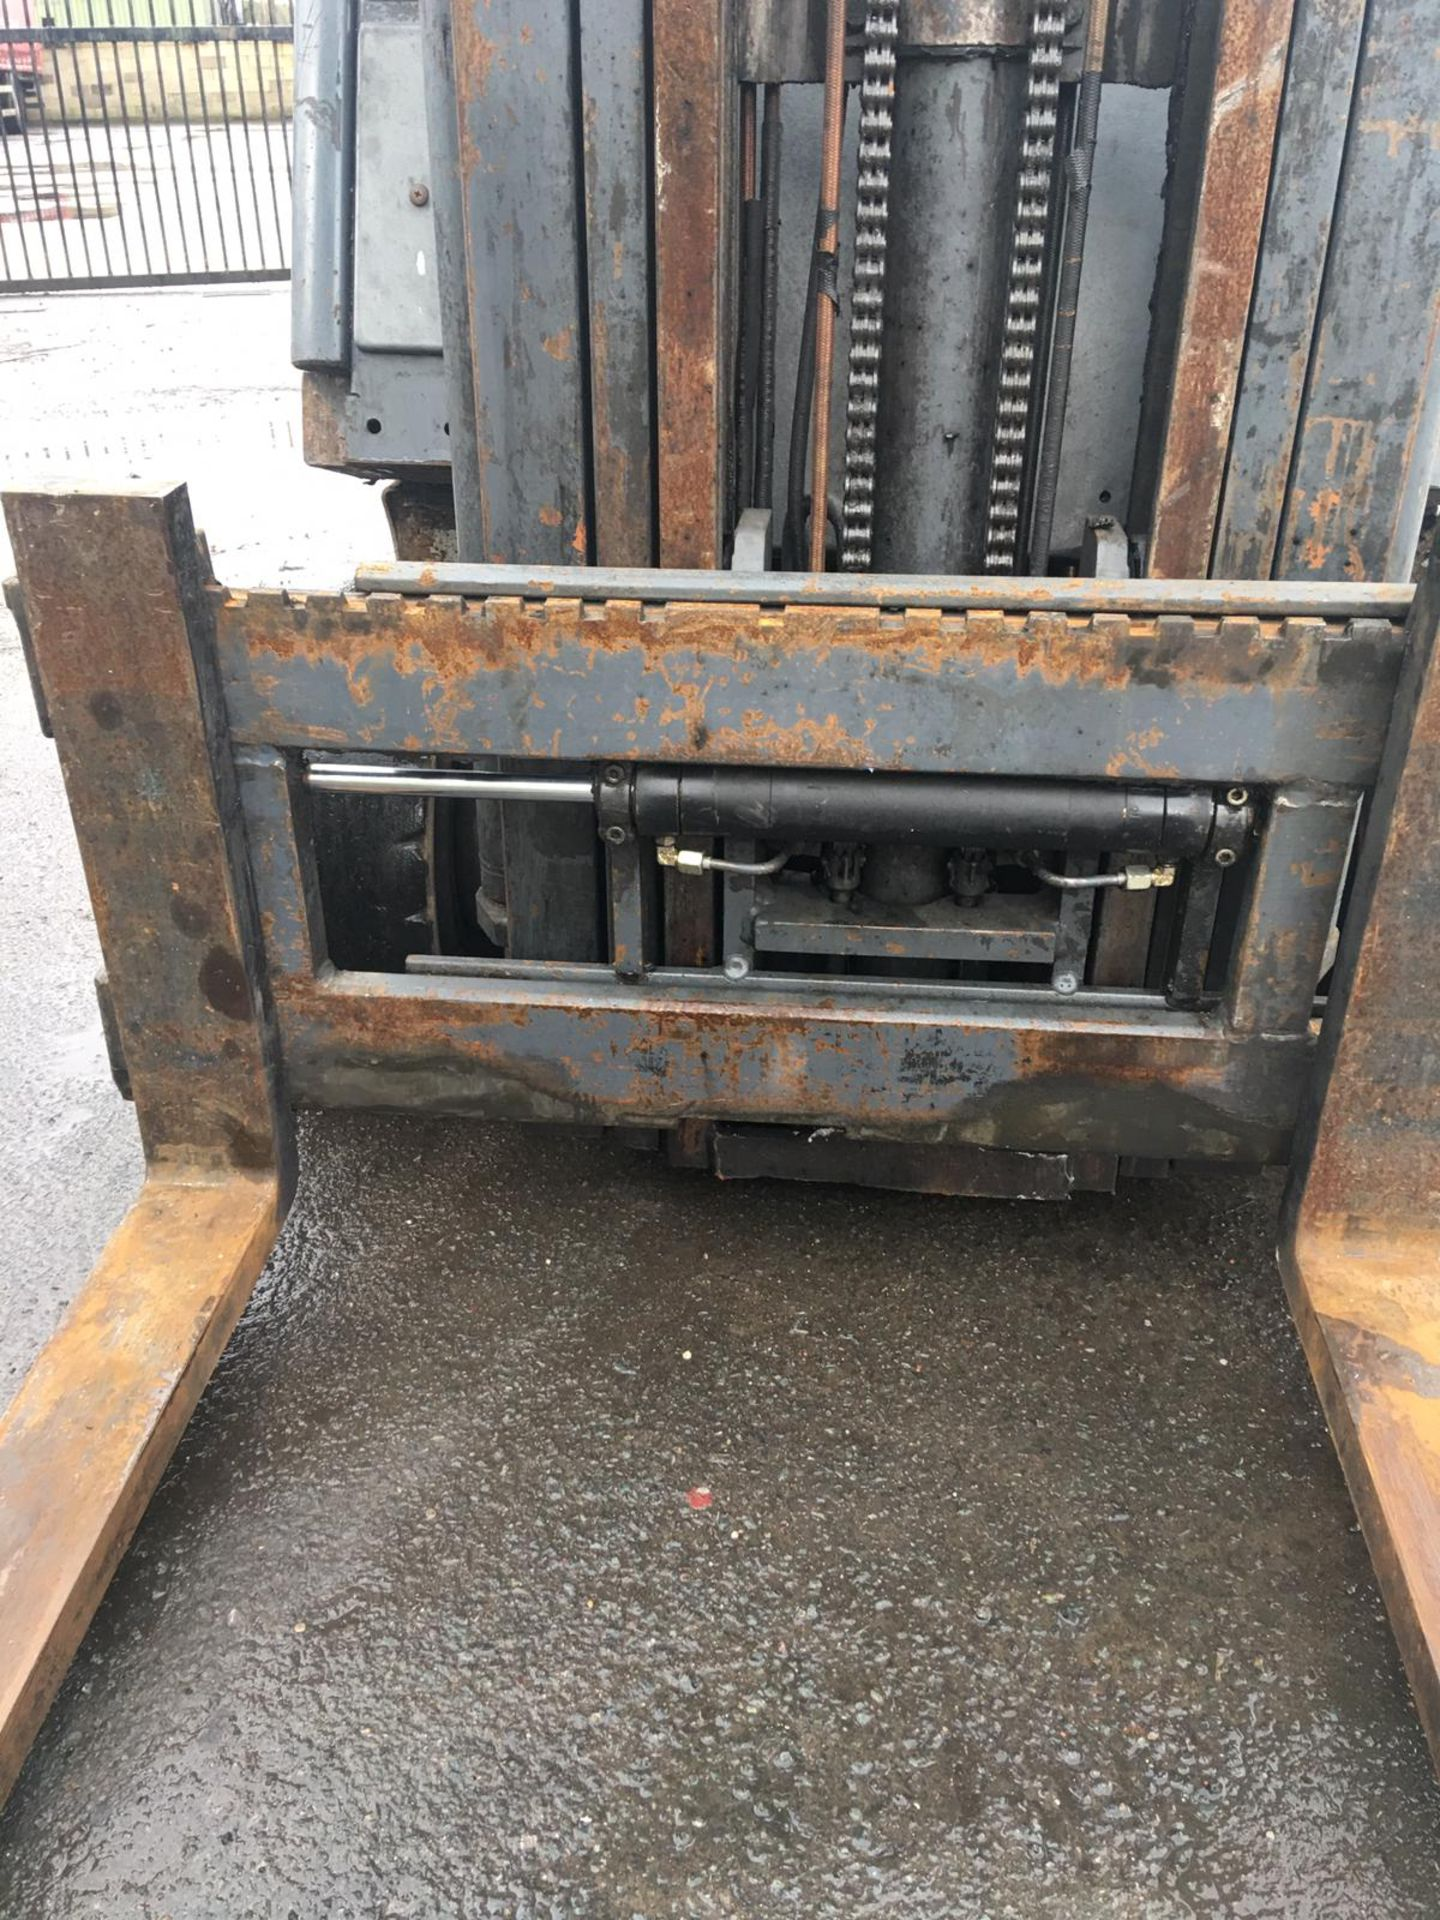 Lot 62 - FIAT D20 FORKLIFT WITH SIDE SHIFT, 3 STAGE MAST, 2000 KG CAPACITY, YEAR 1995 *NO VAT*